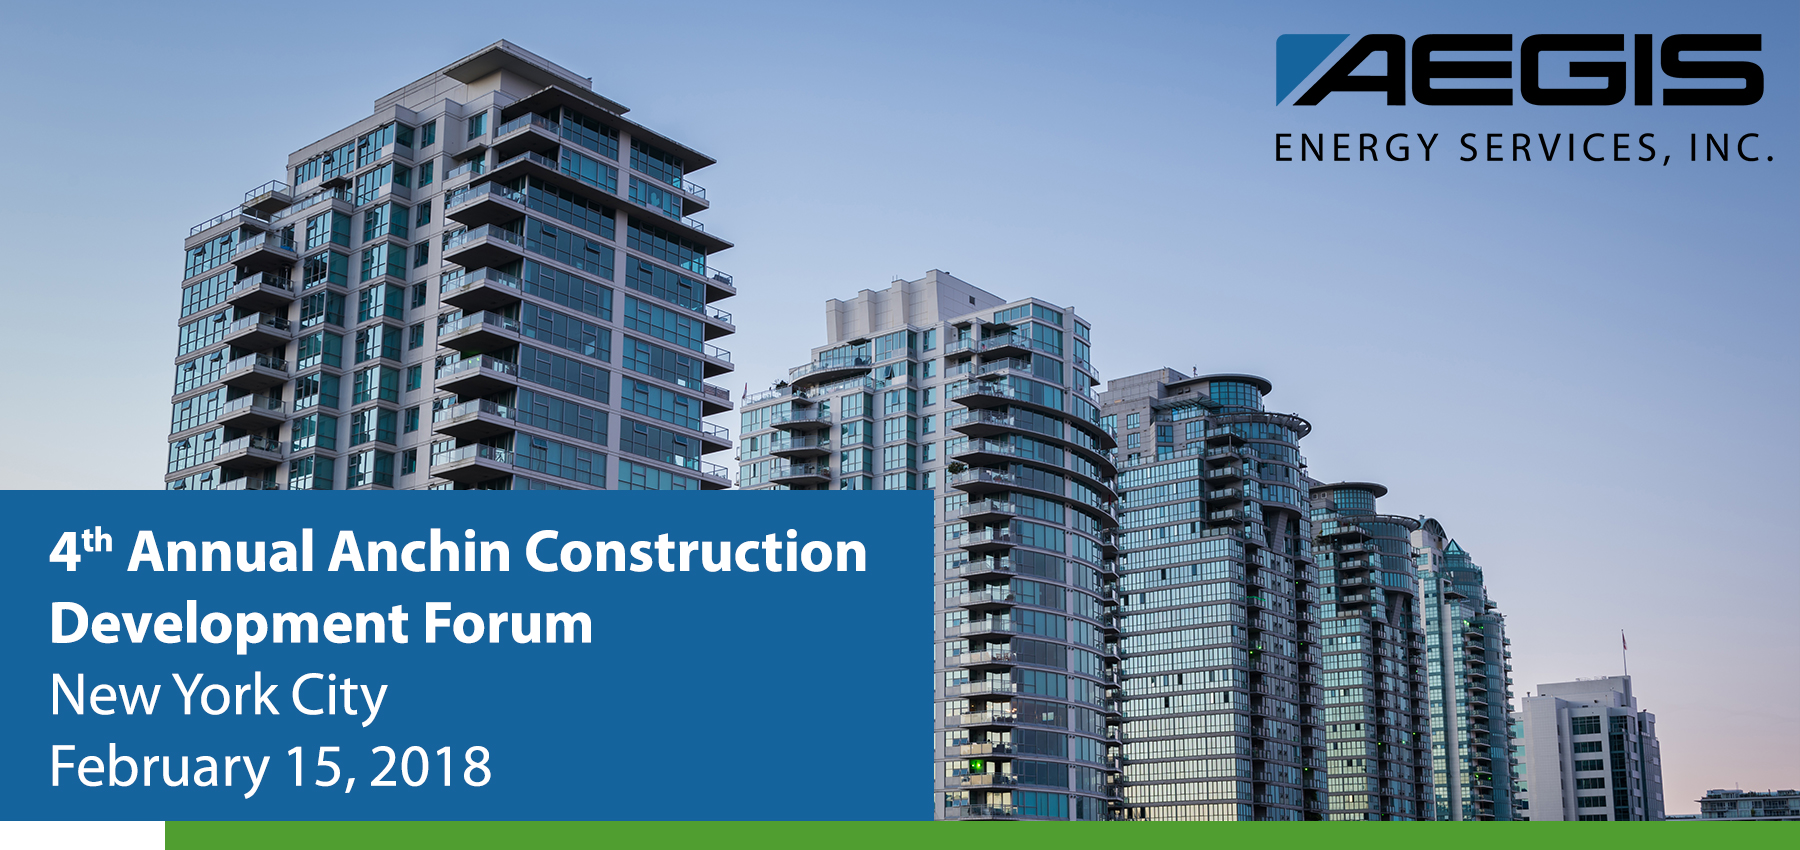 image from Anchin Construction Development Forum